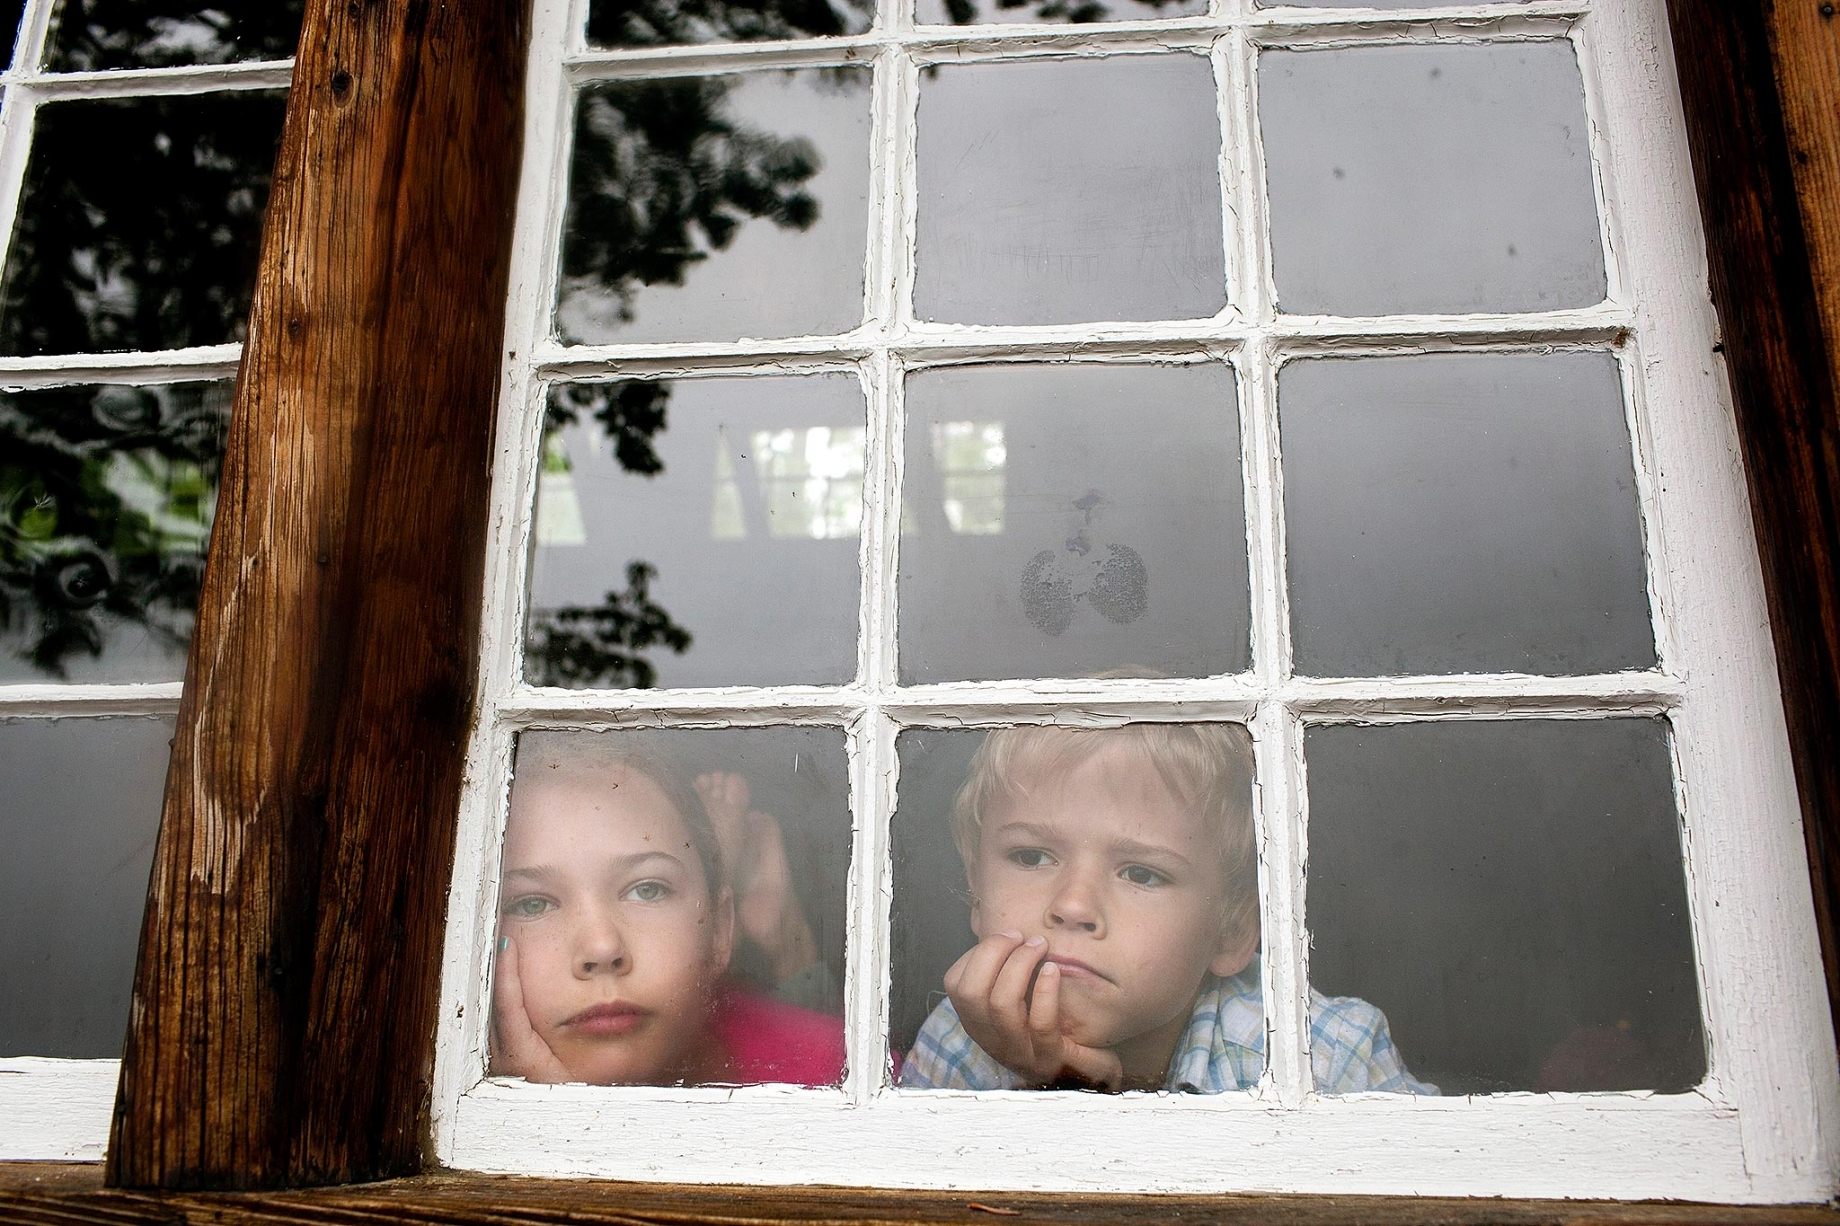 Children looking through window